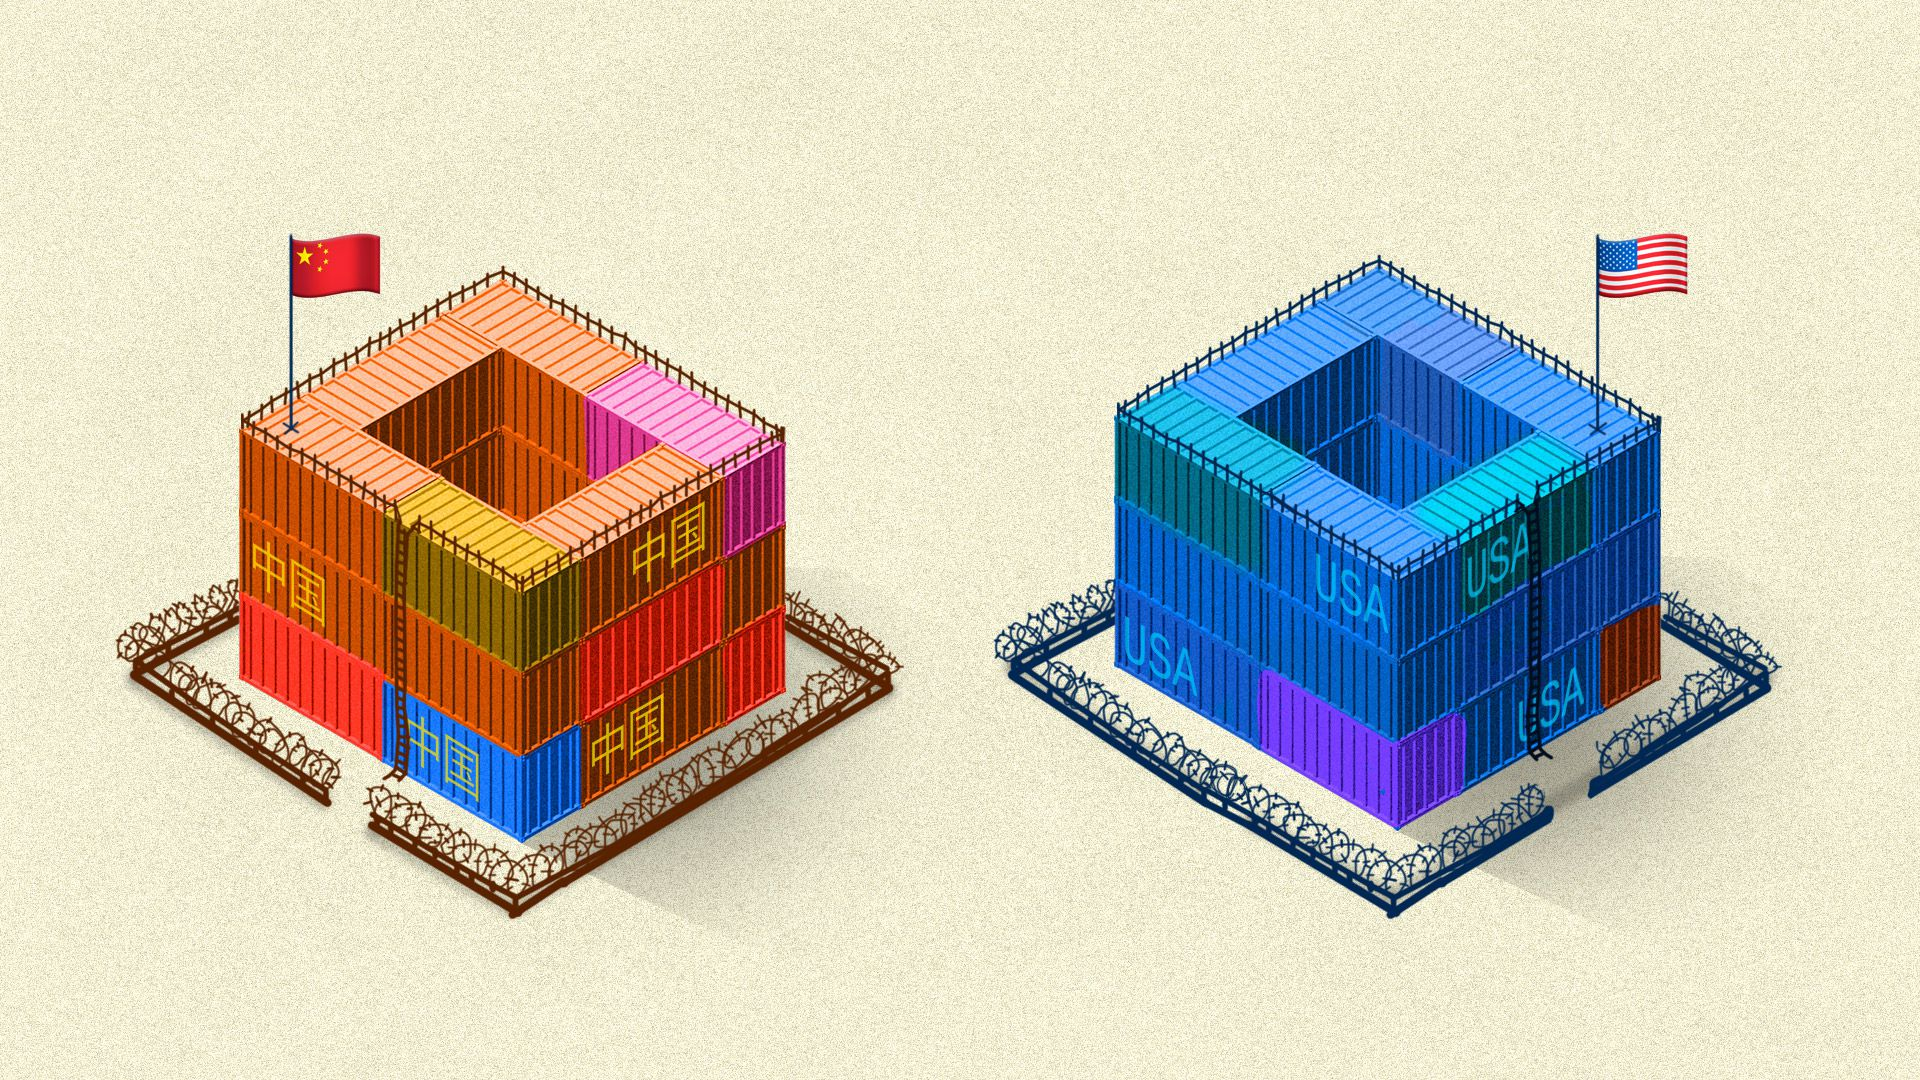 Illustration of China and U.S. shipping containers as two separate forts.